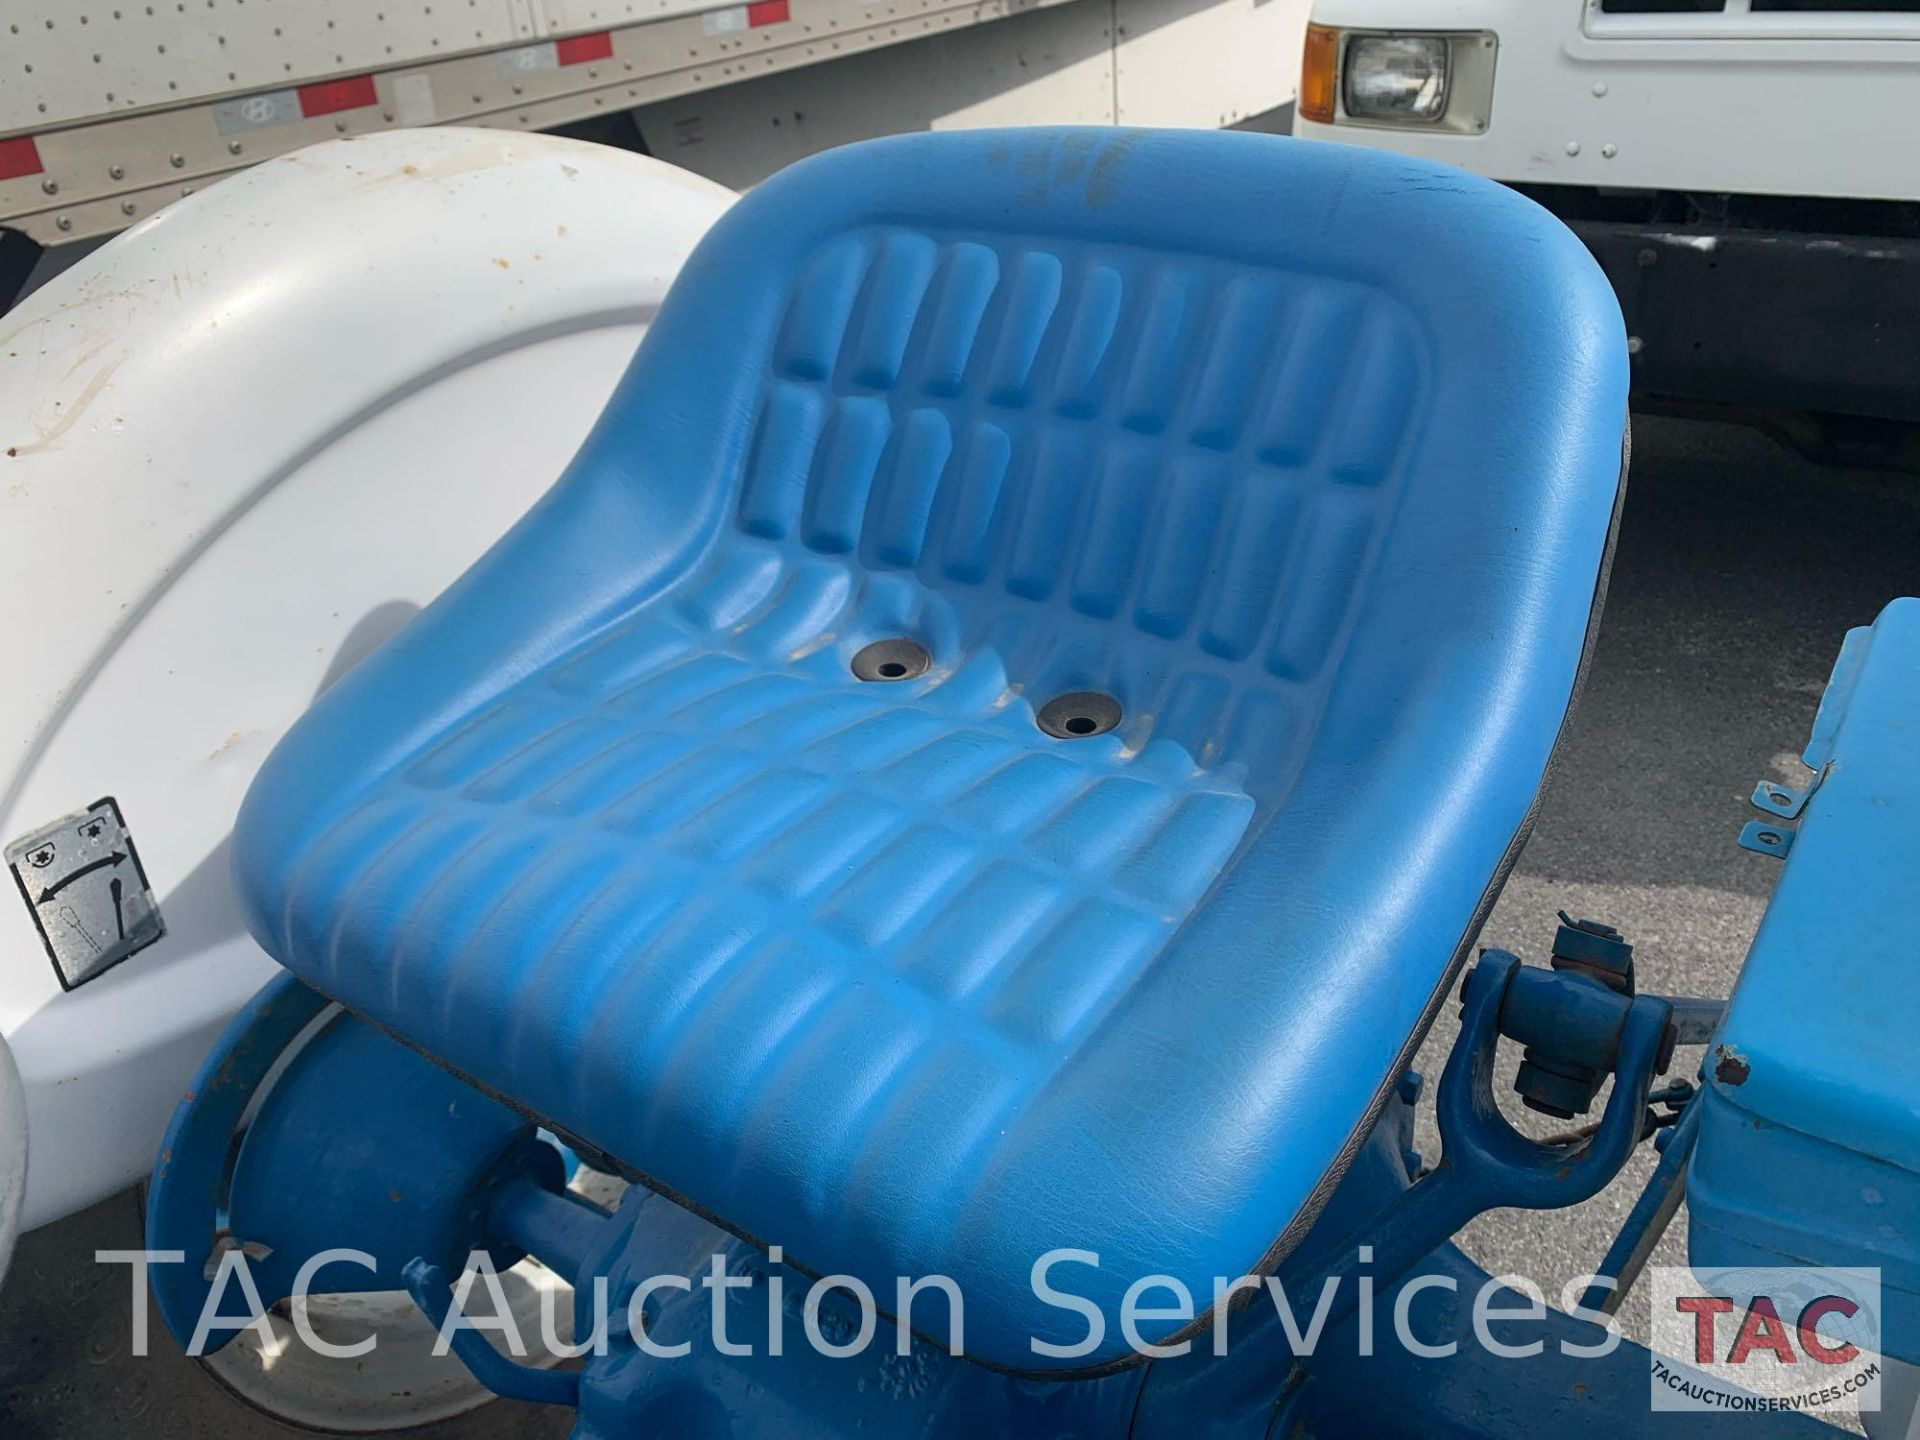 Ford 2000 Farm Tractor - Image 9 of 28